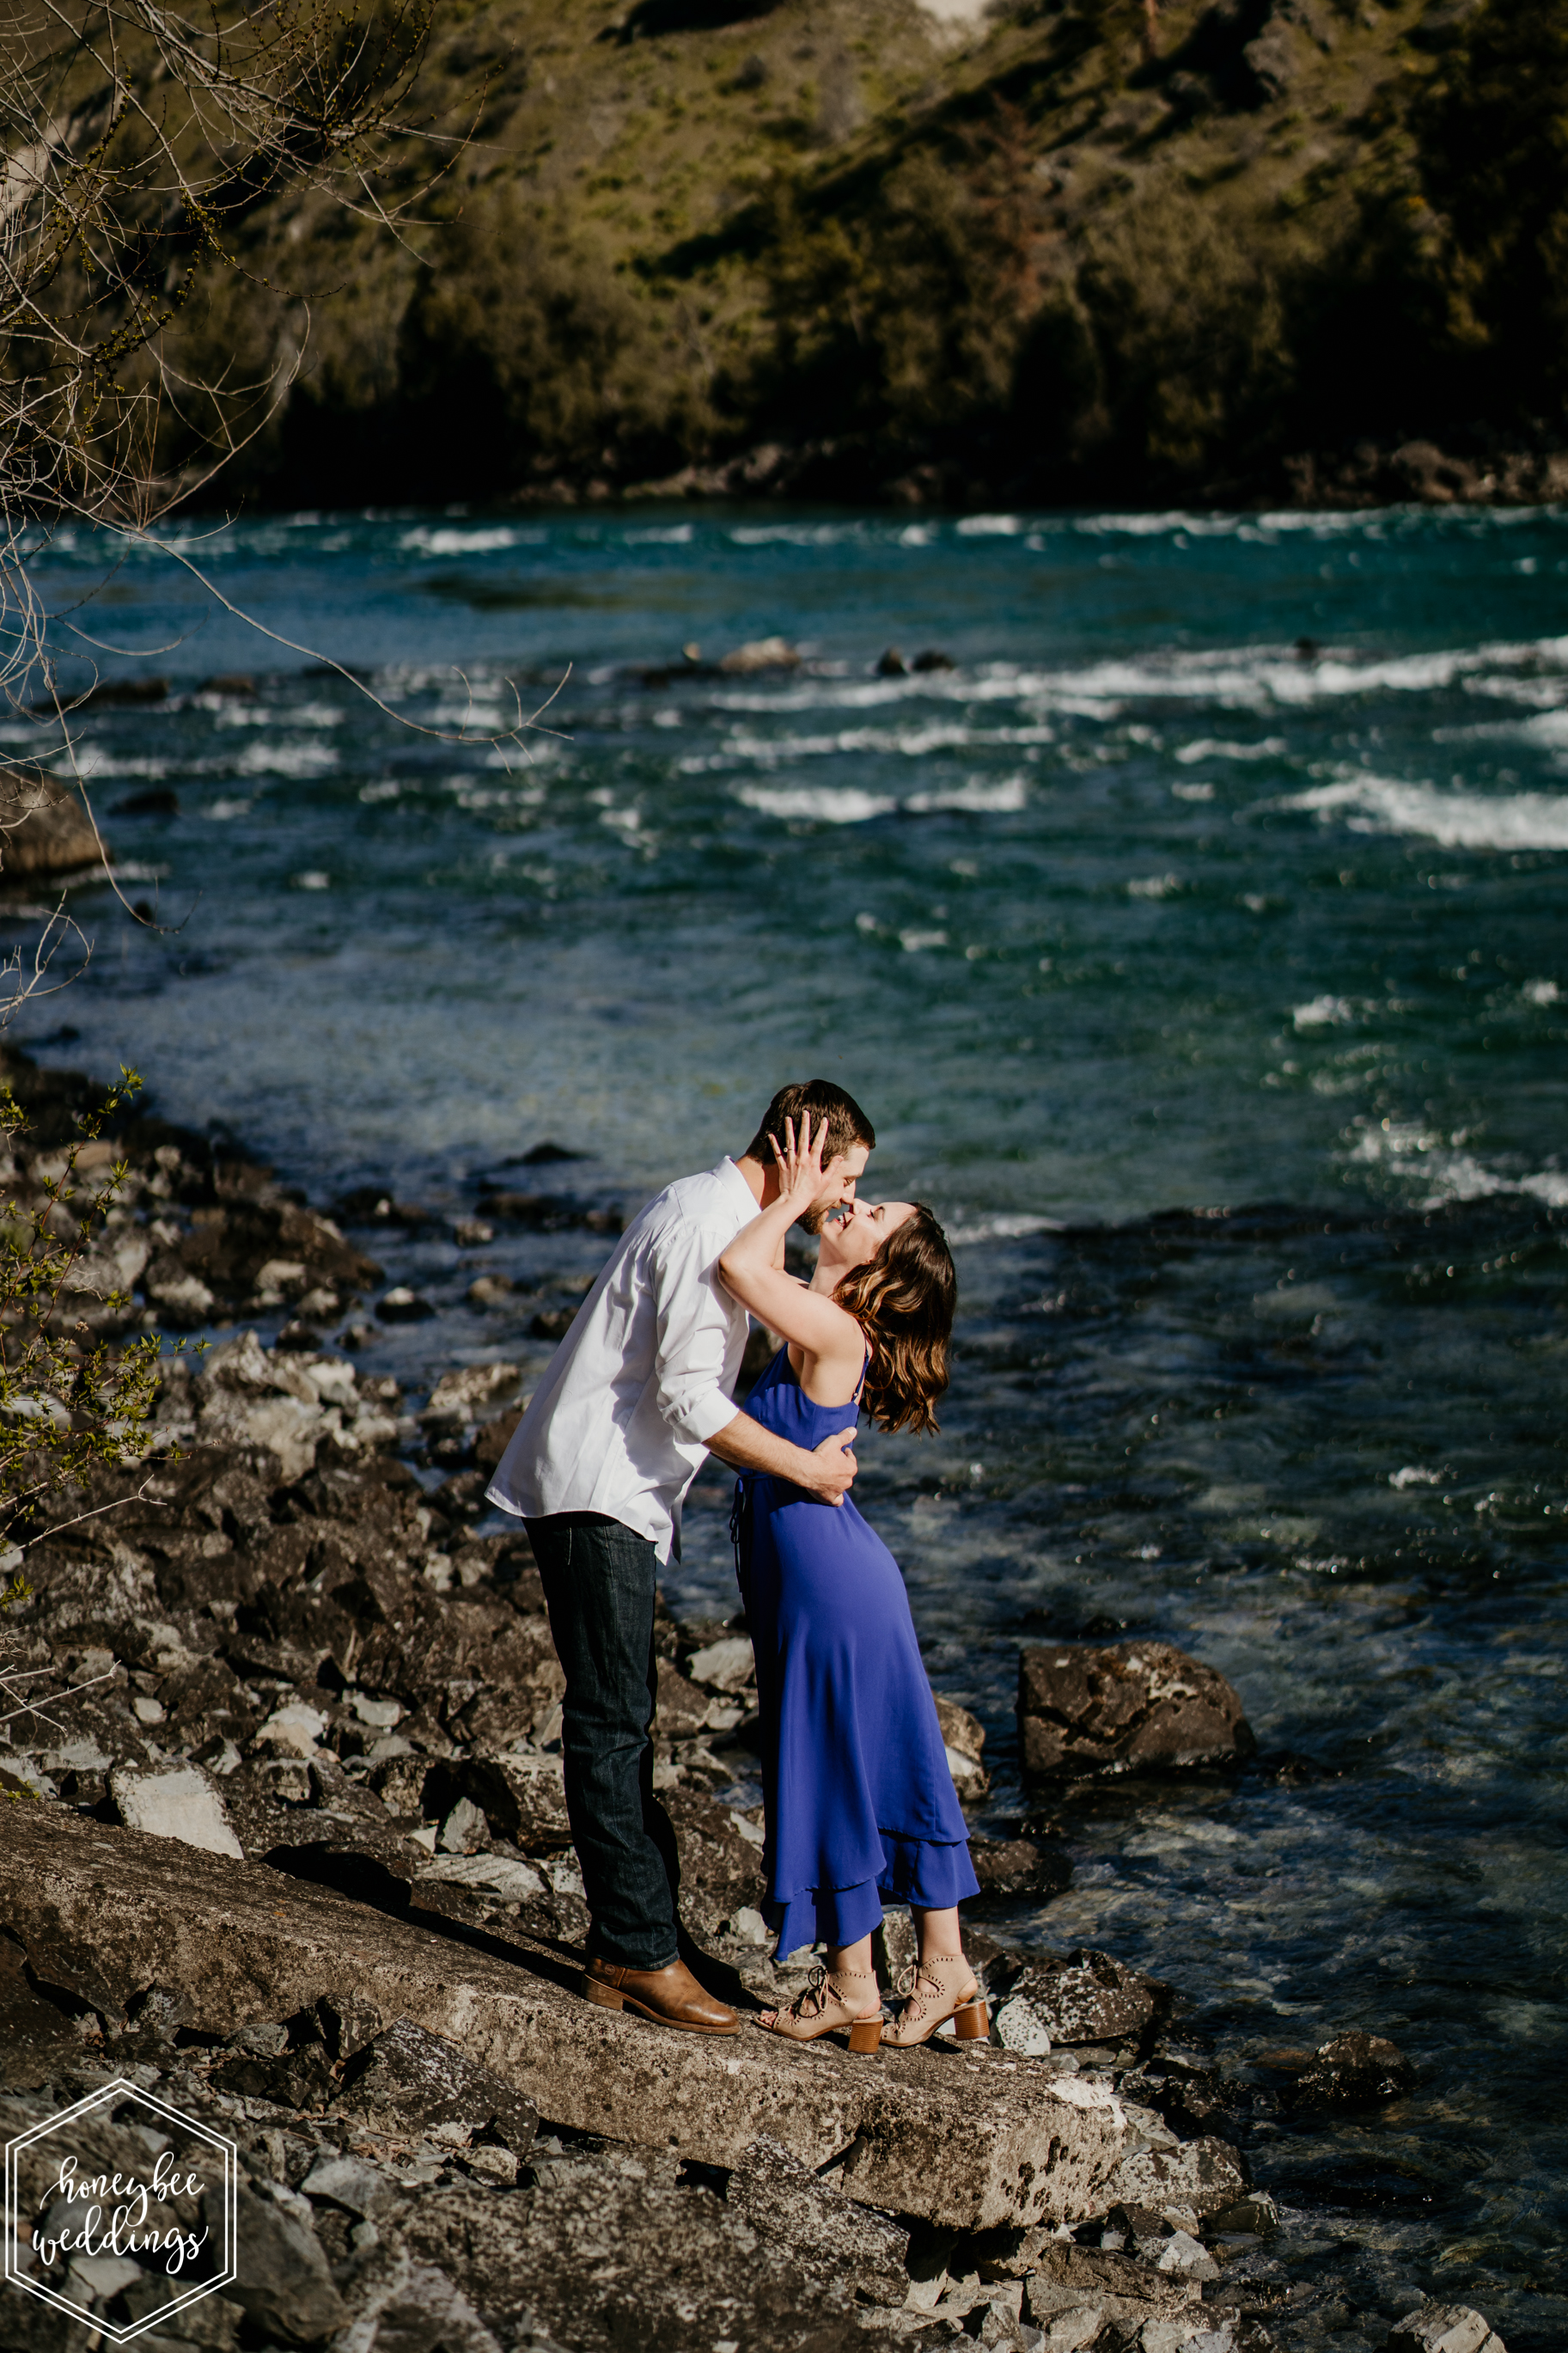 028Montana Wedding Photographer_Polson Engagement Session_Carrie & Matt_Honeybee Weddings_May 11, 2019-78.jpg